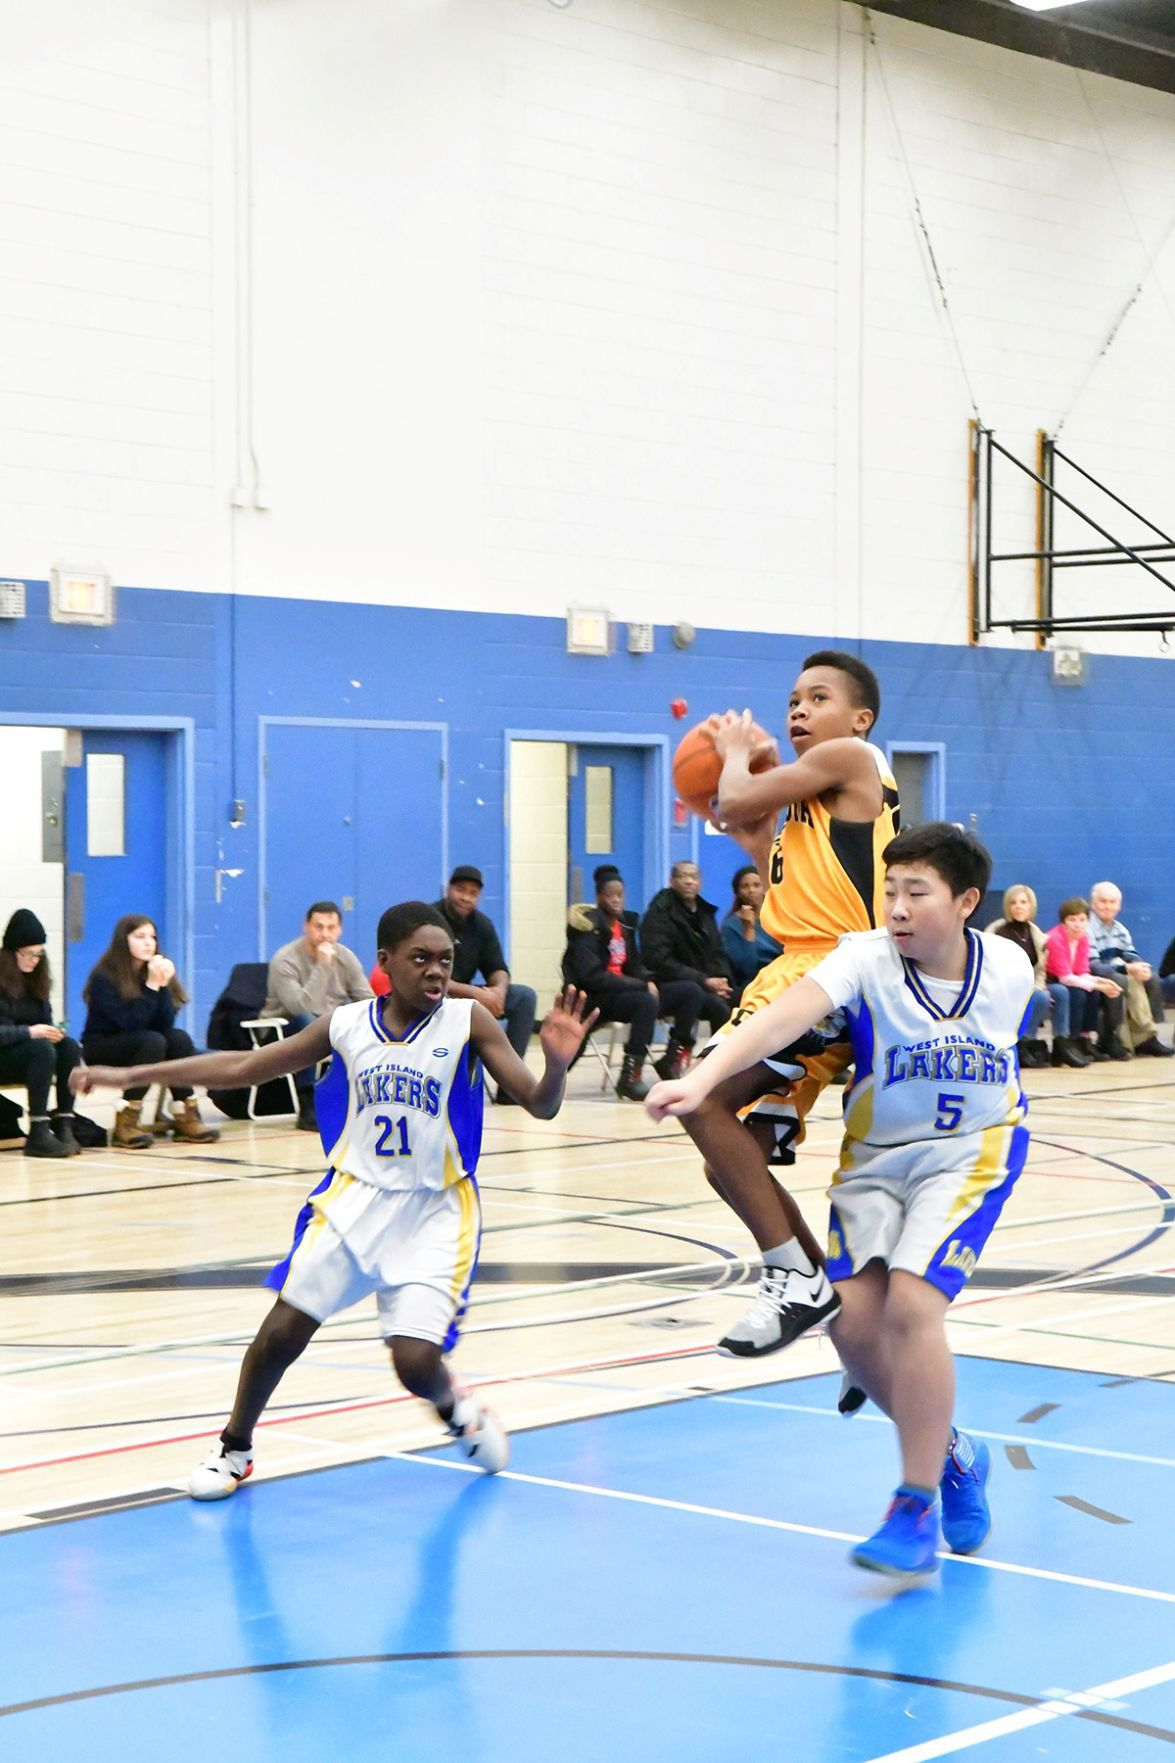 Sun Youth Downs West Island in Sunday Matinee